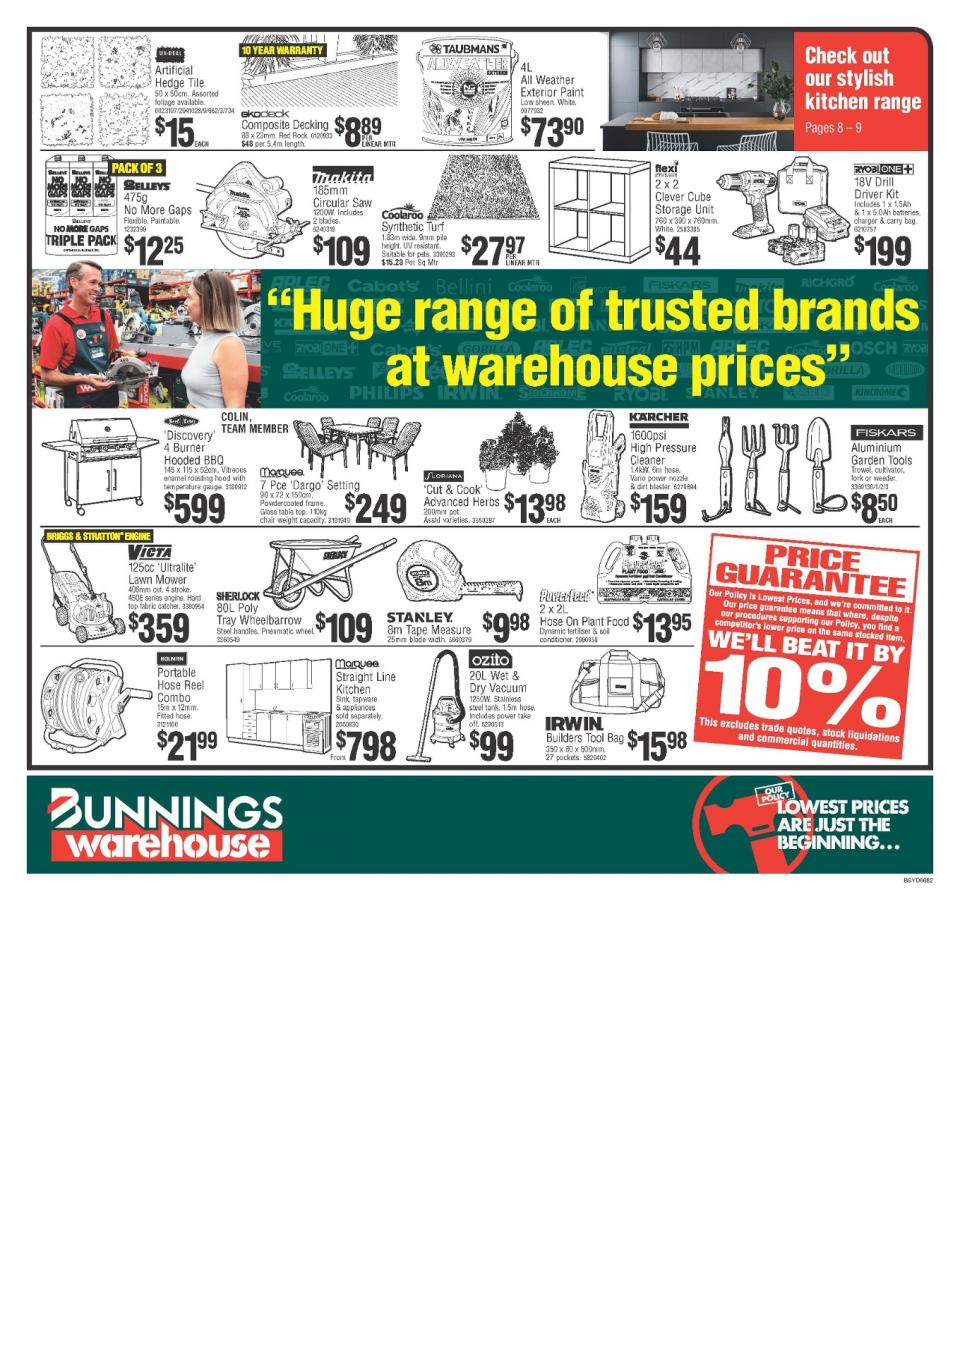 bunnings catalogue march 2019